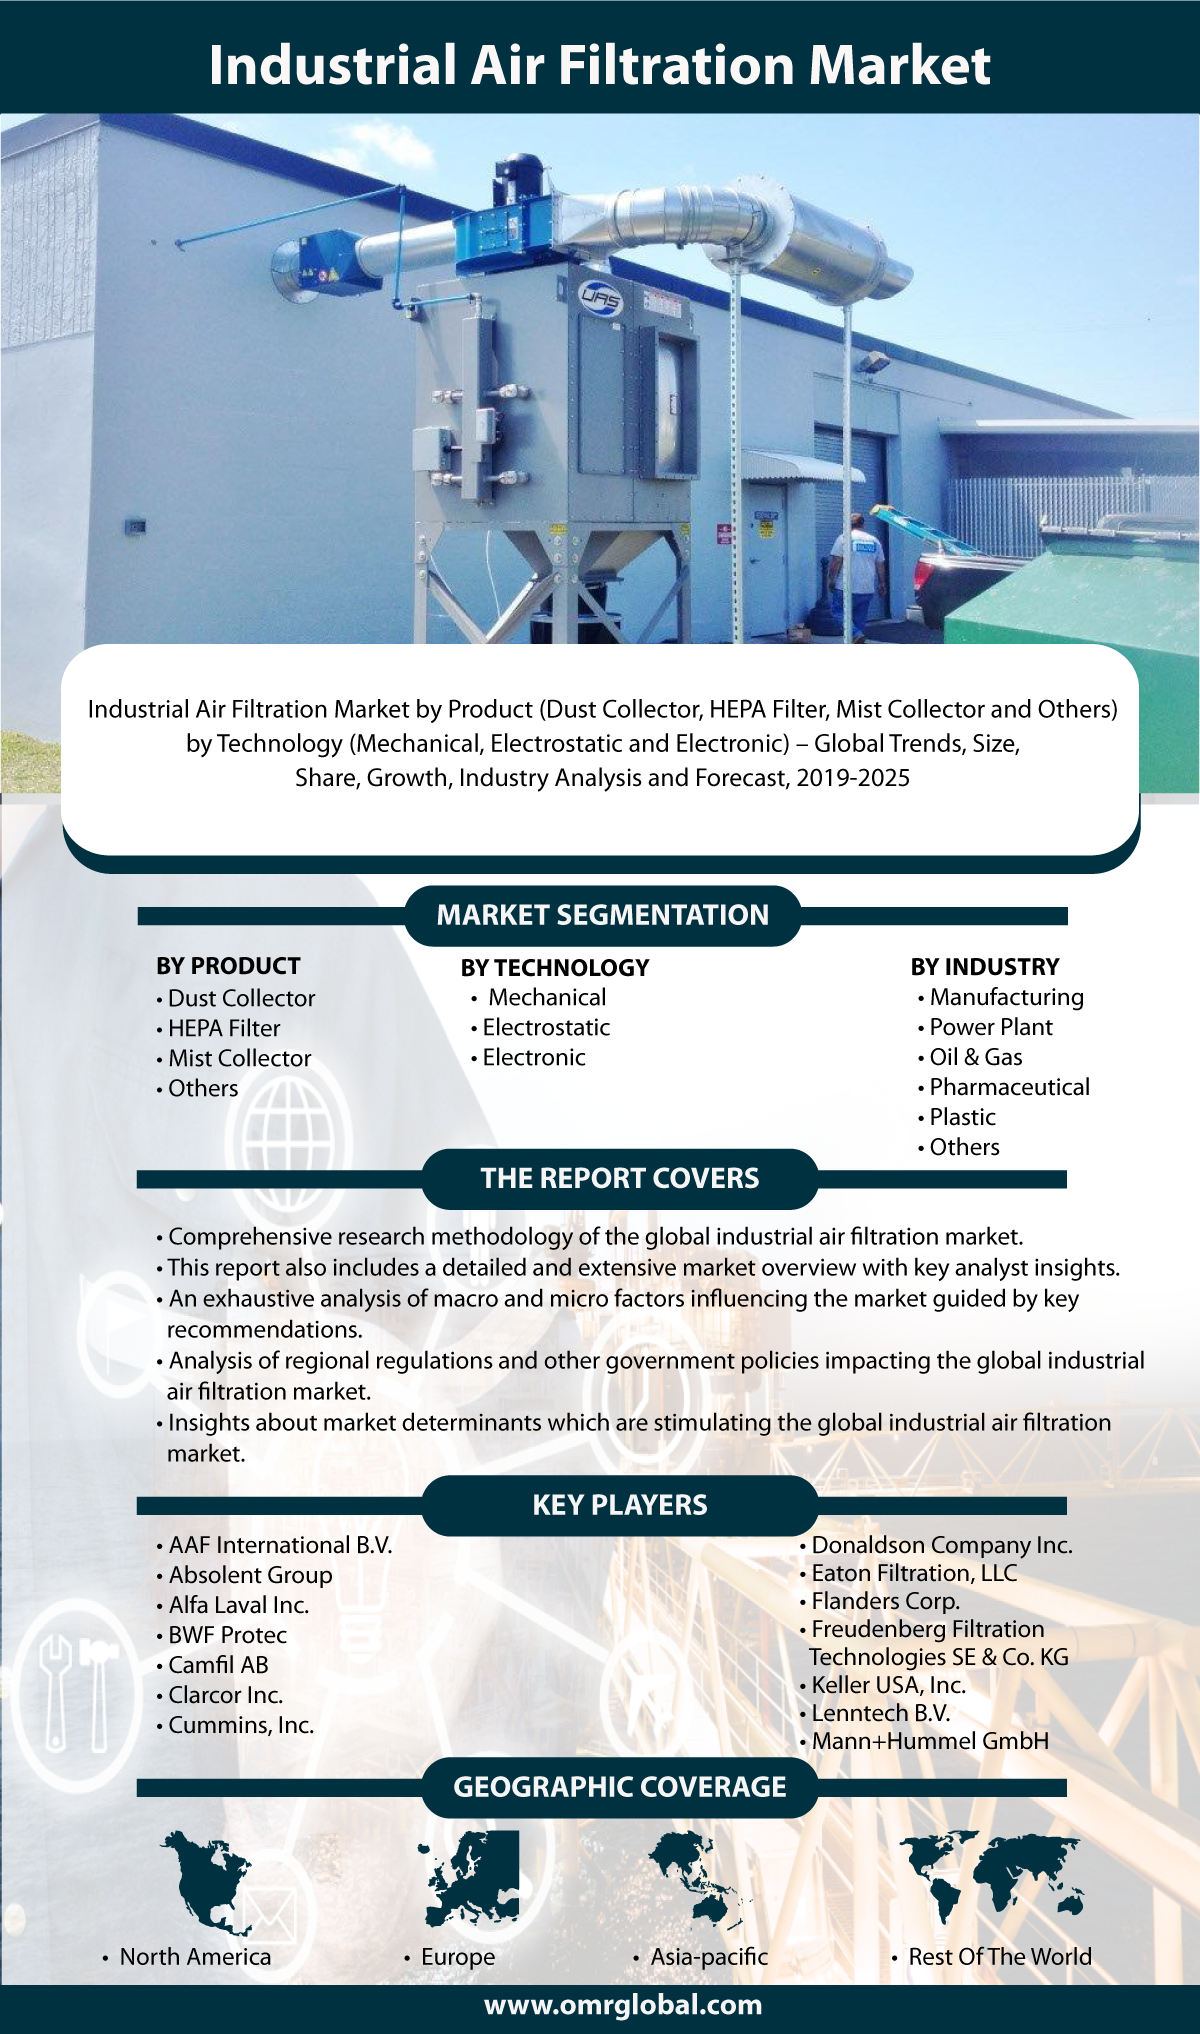 Industrial air filtration is a process of improving air